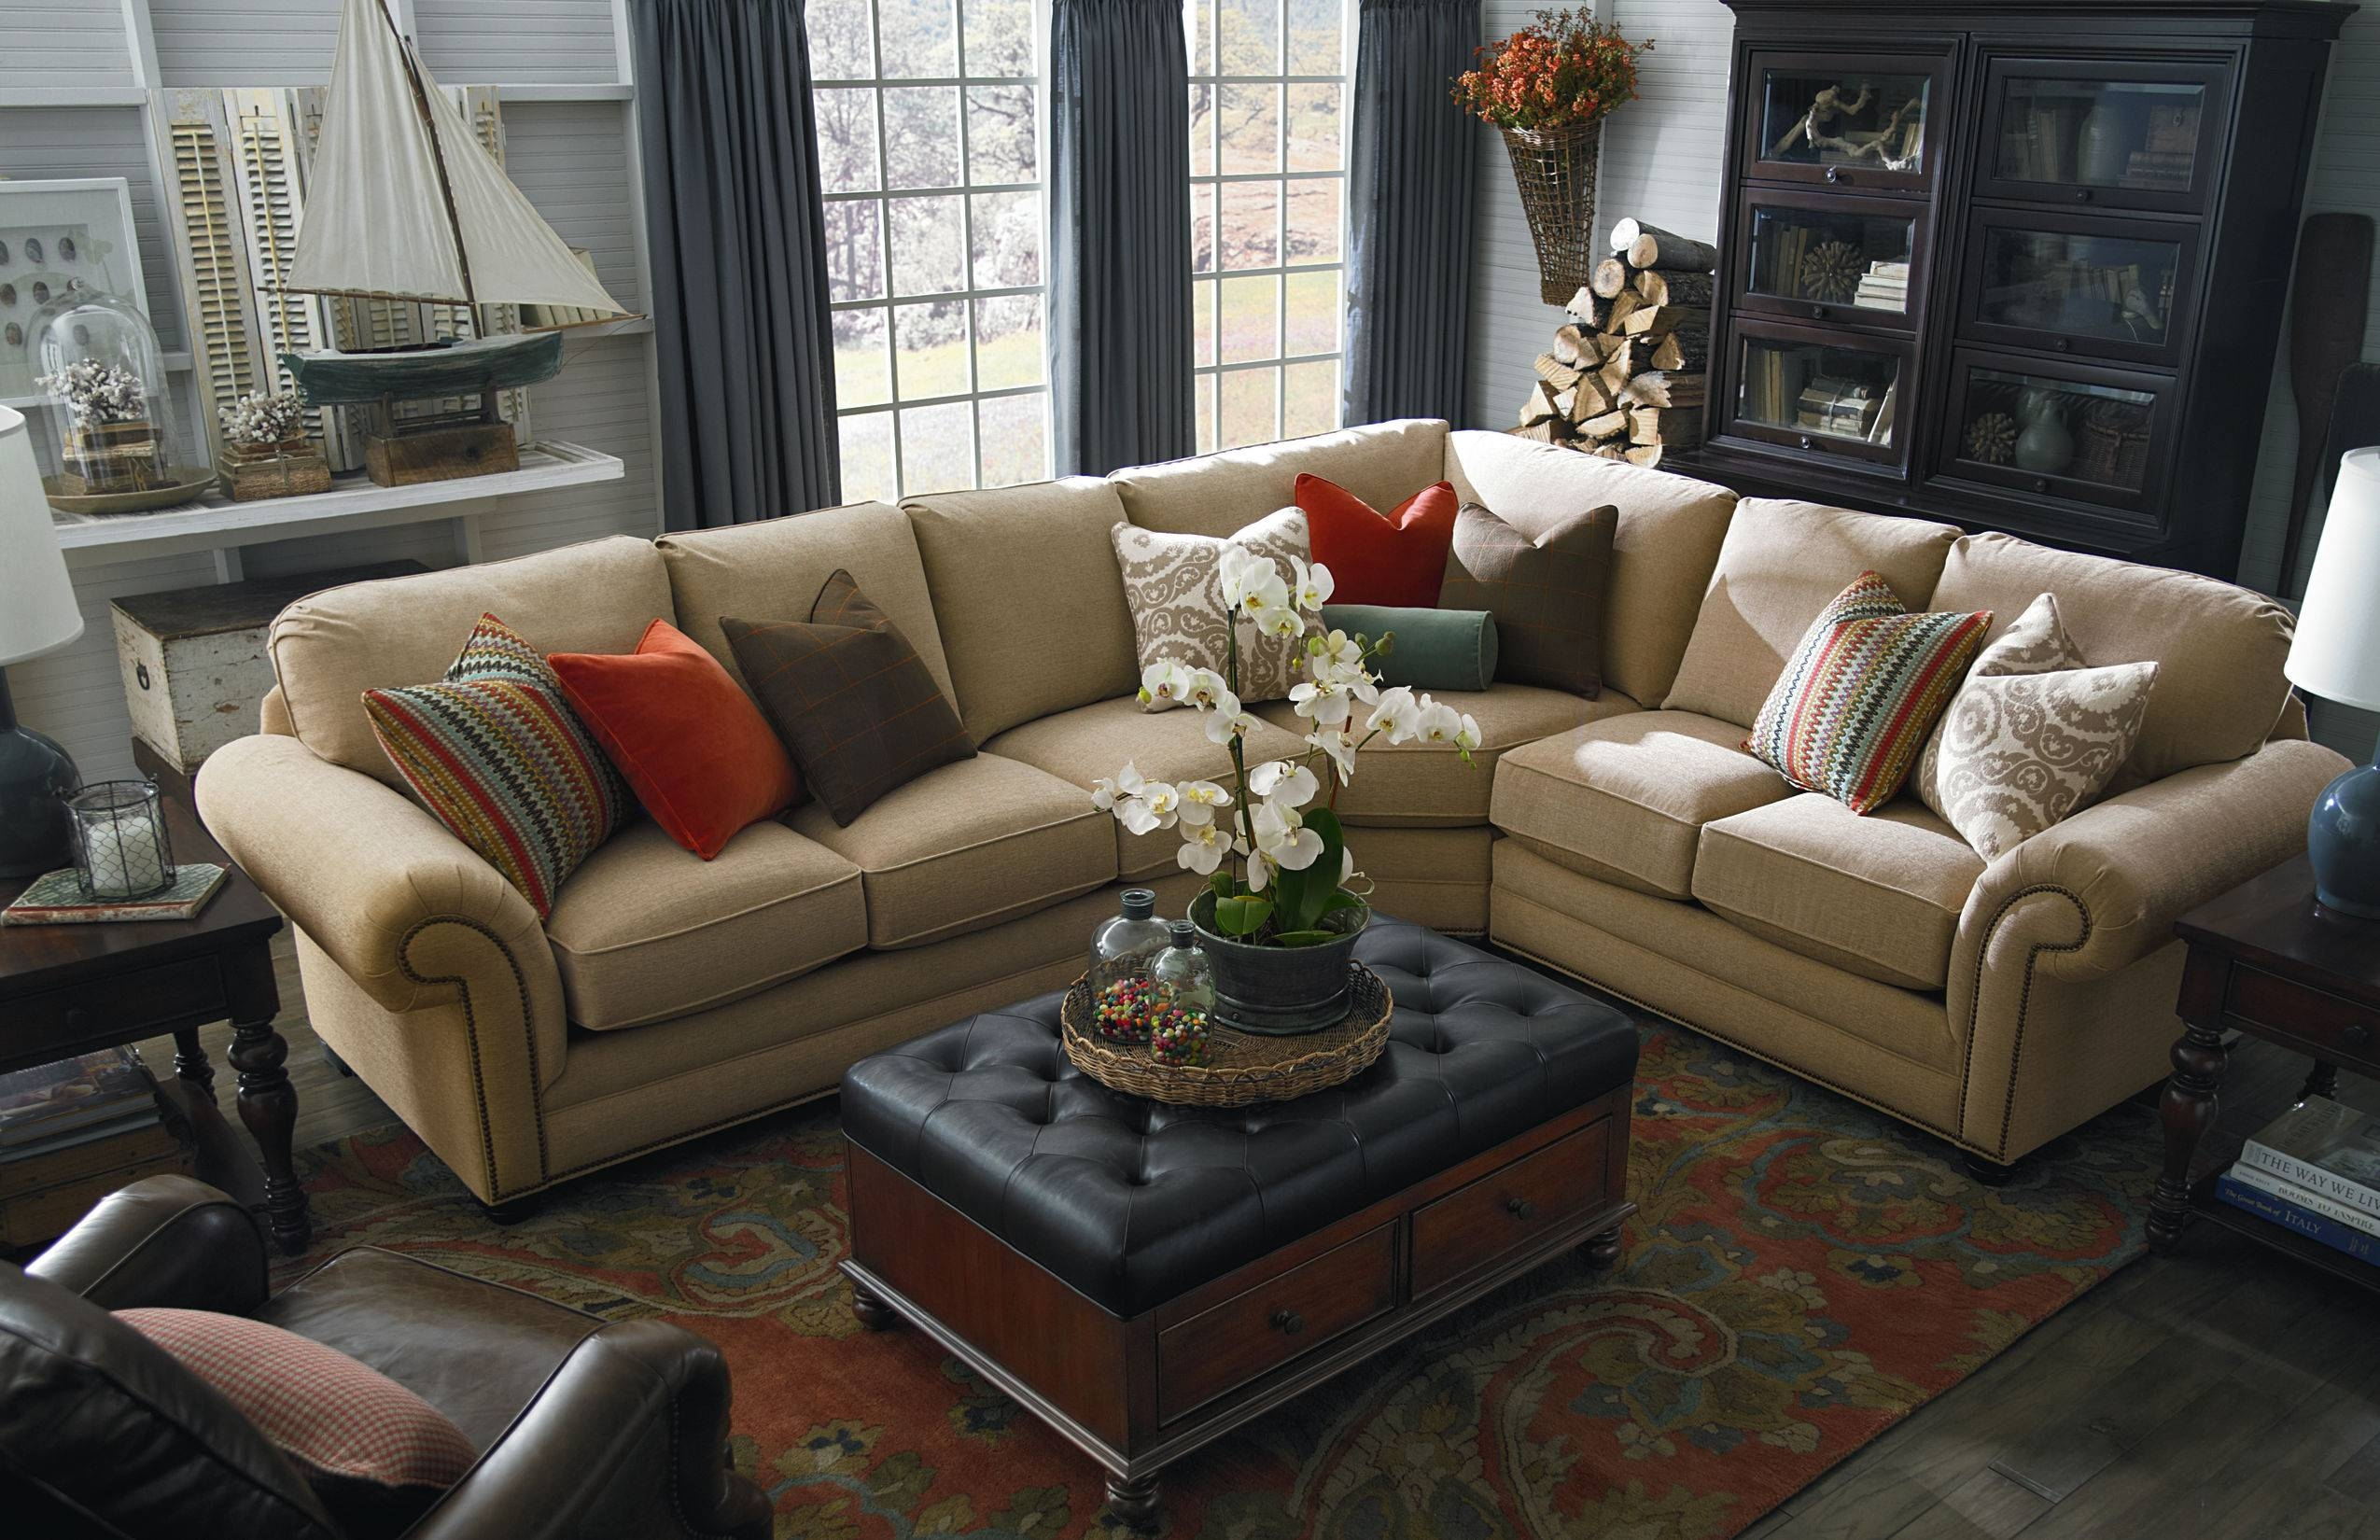 Furniture: Large Sectional Sofas | Large Deep Sectional Sofas in Sectional Sofa With Oversized Ottoman (Image 13 of 30)